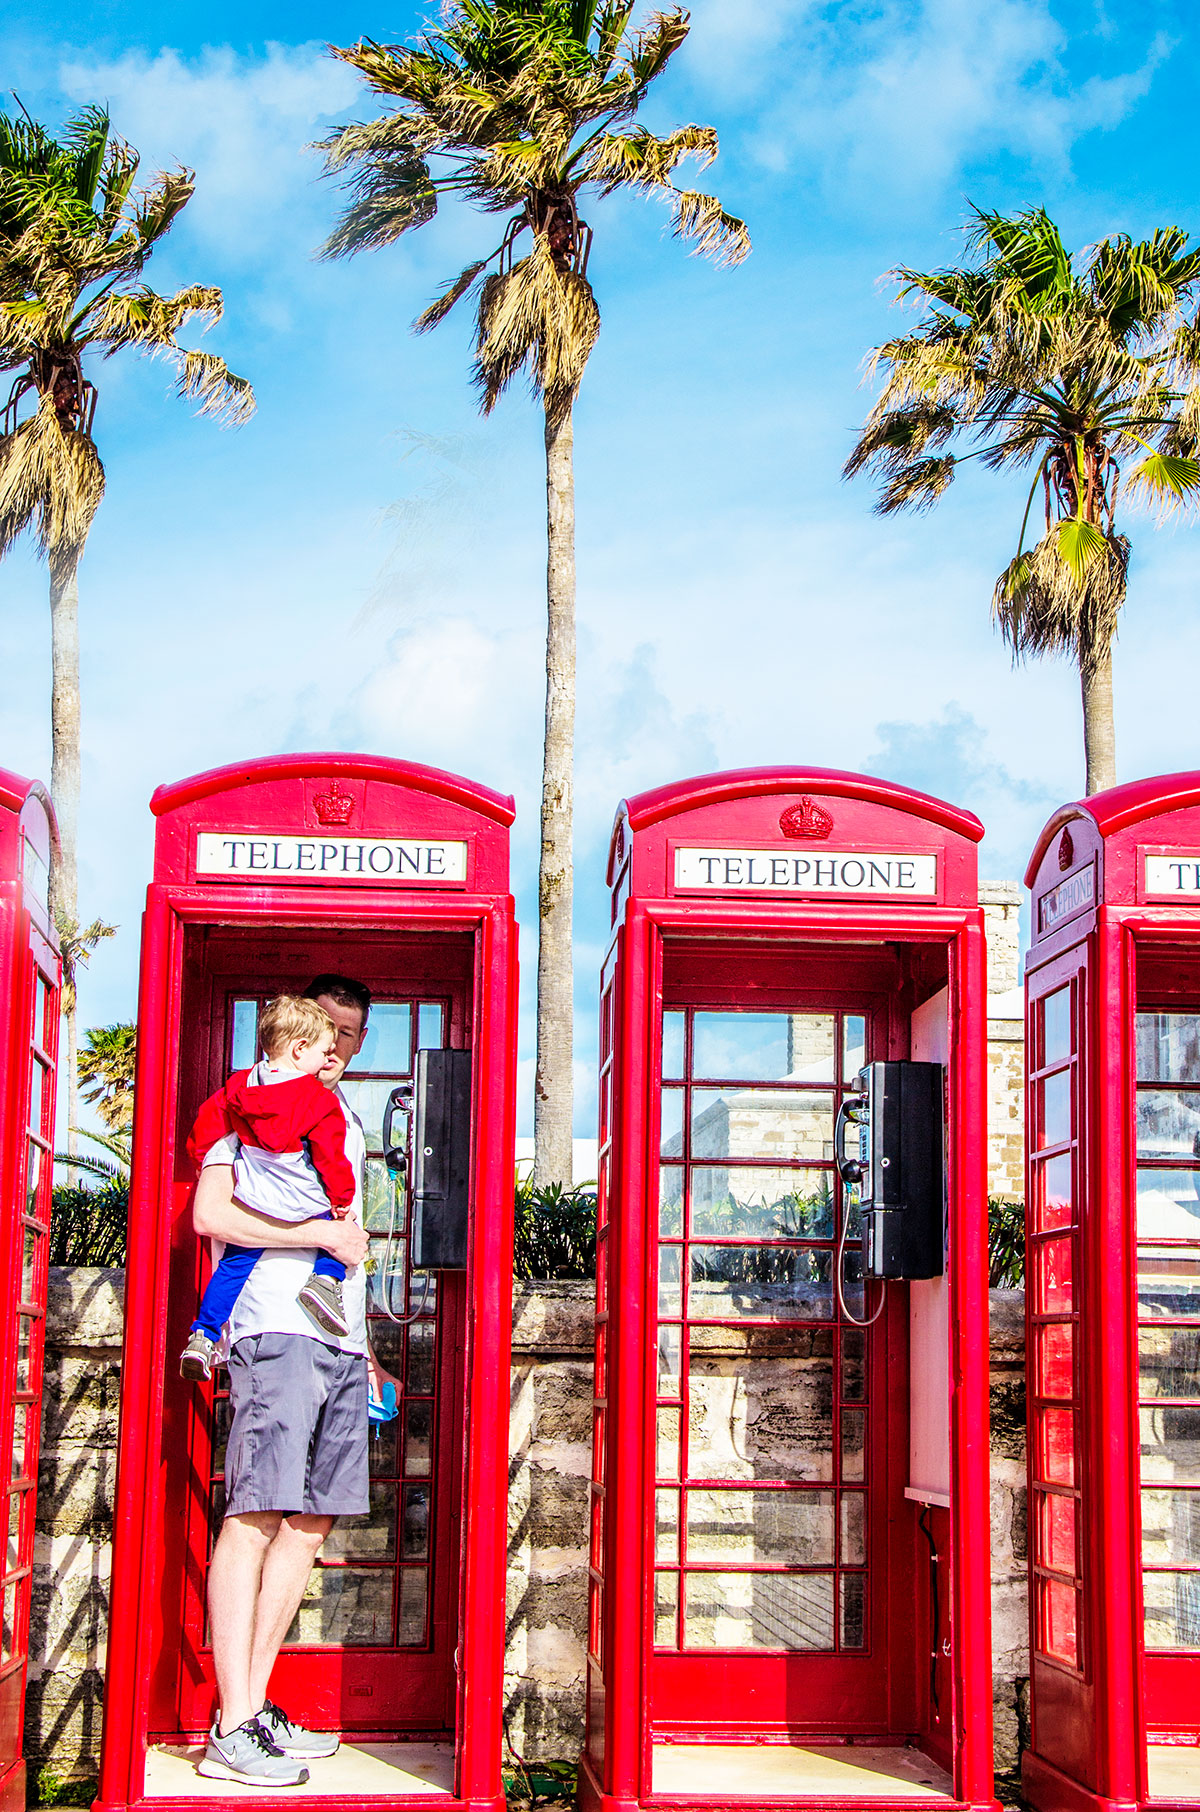 telephone-booths-in-bermuda